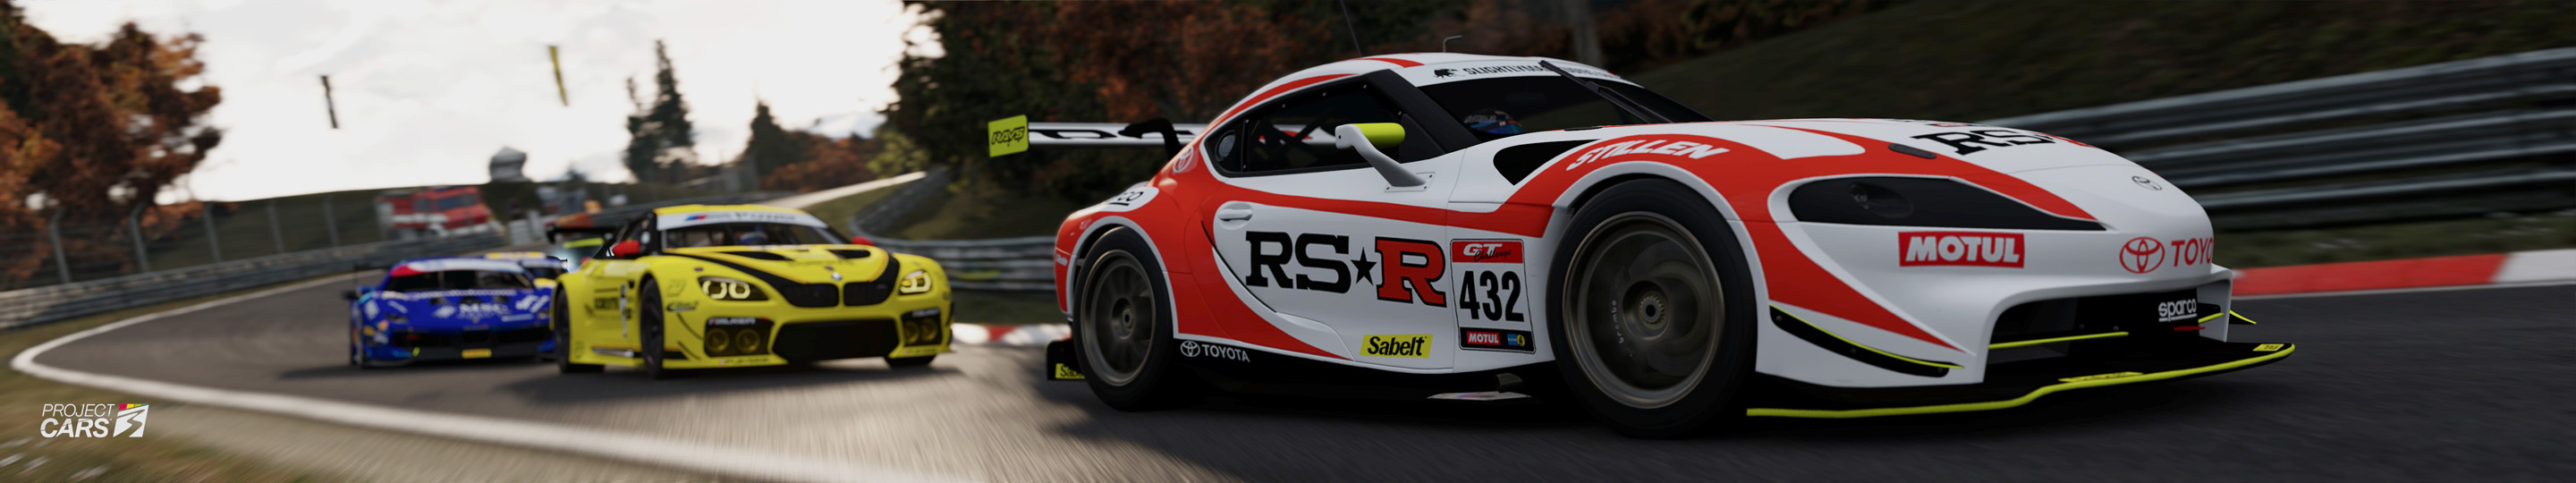 9 PROJECT CARS 3 GT3 at NORDSCHLEIFE copy.jpg